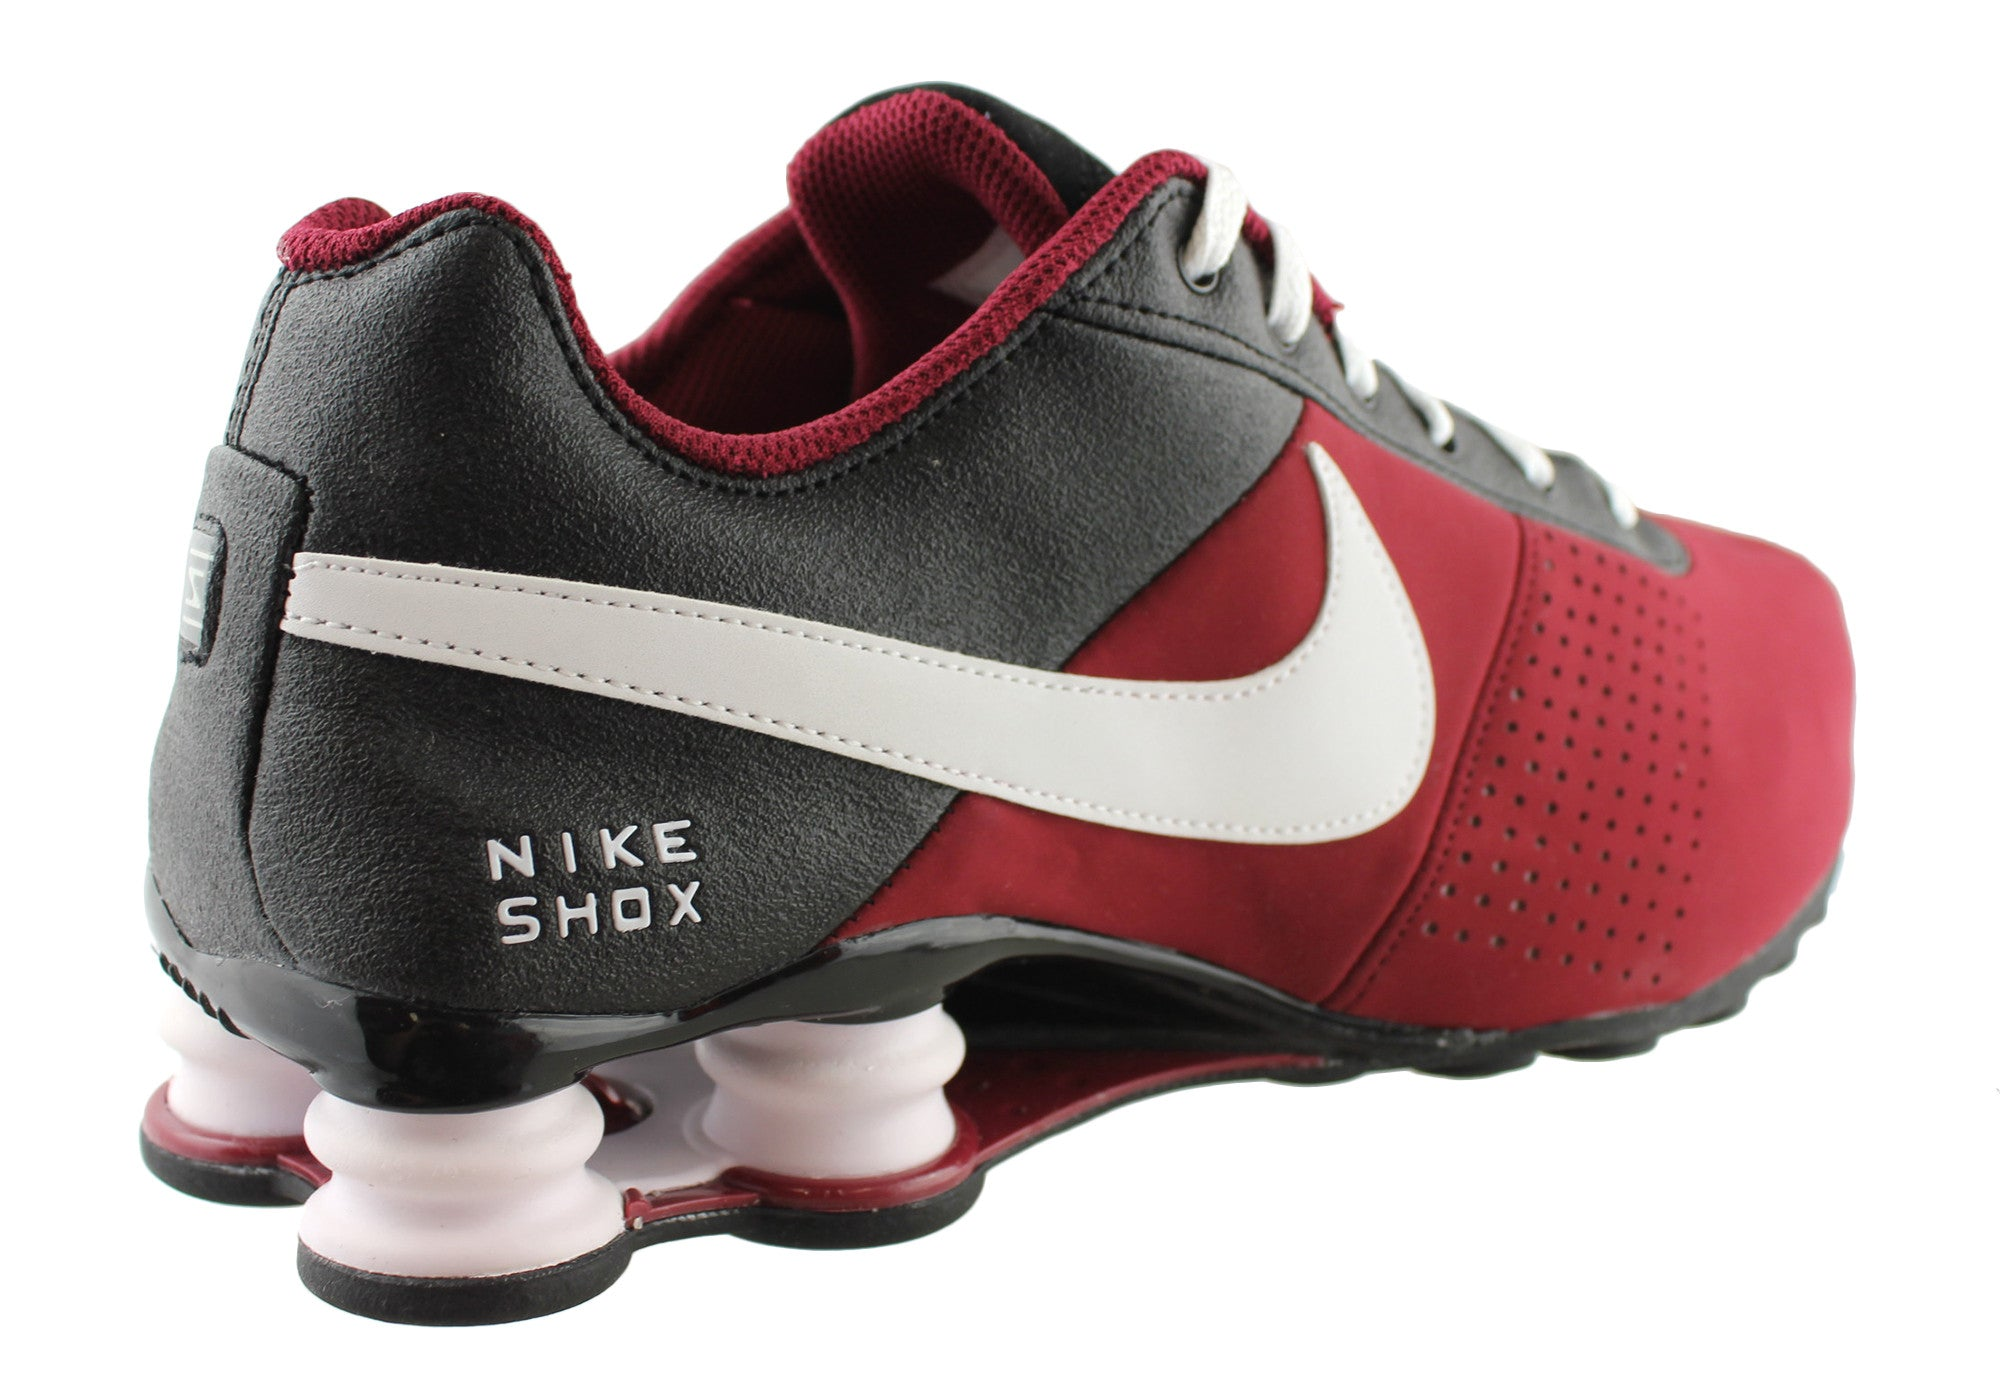 nike air shox mens under 70 traffic school online. Black Bedroom Furniture Sets. Home Design Ideas